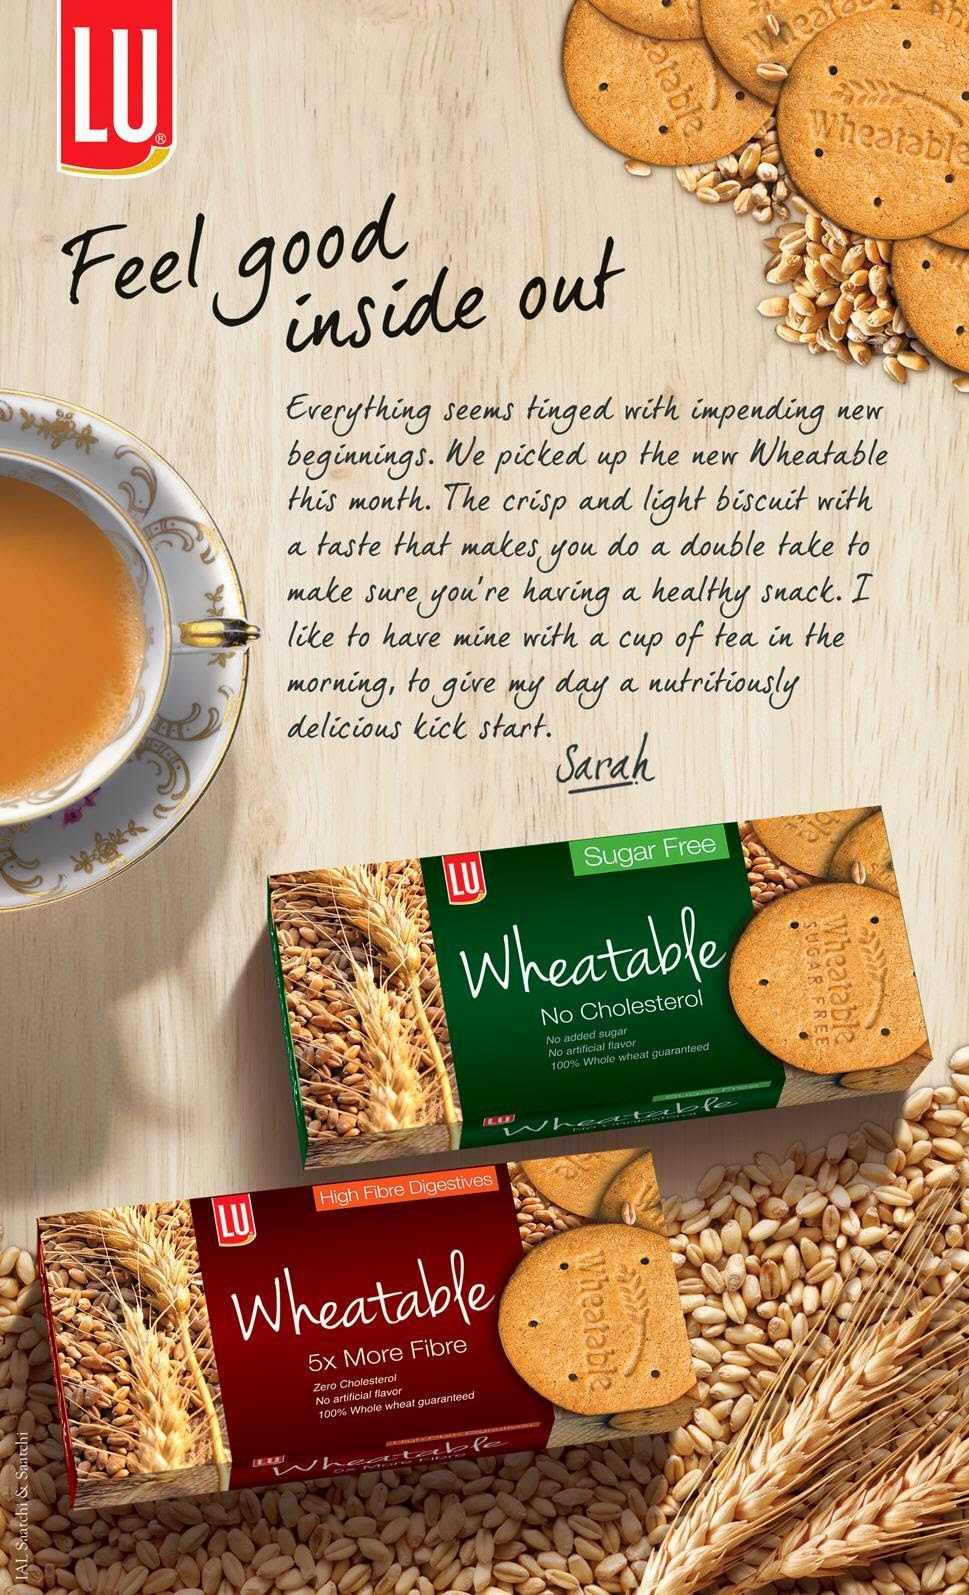 LU | Wheatable Biscuits in Pakistan